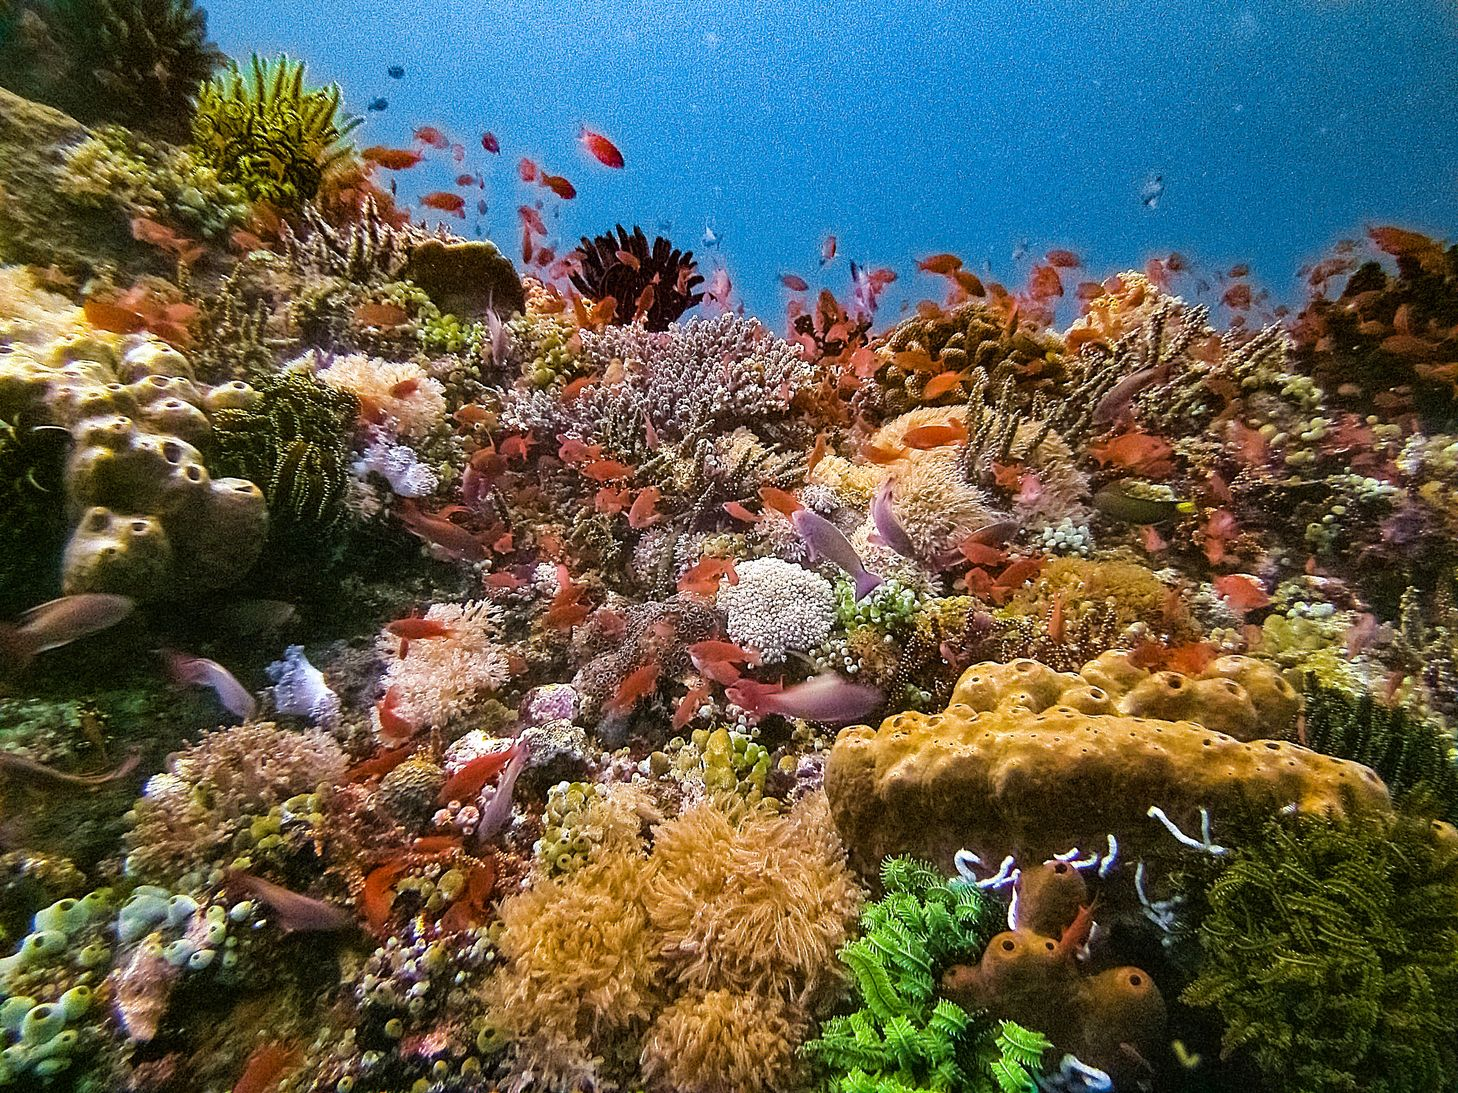 Colorful fishes and coral reefs